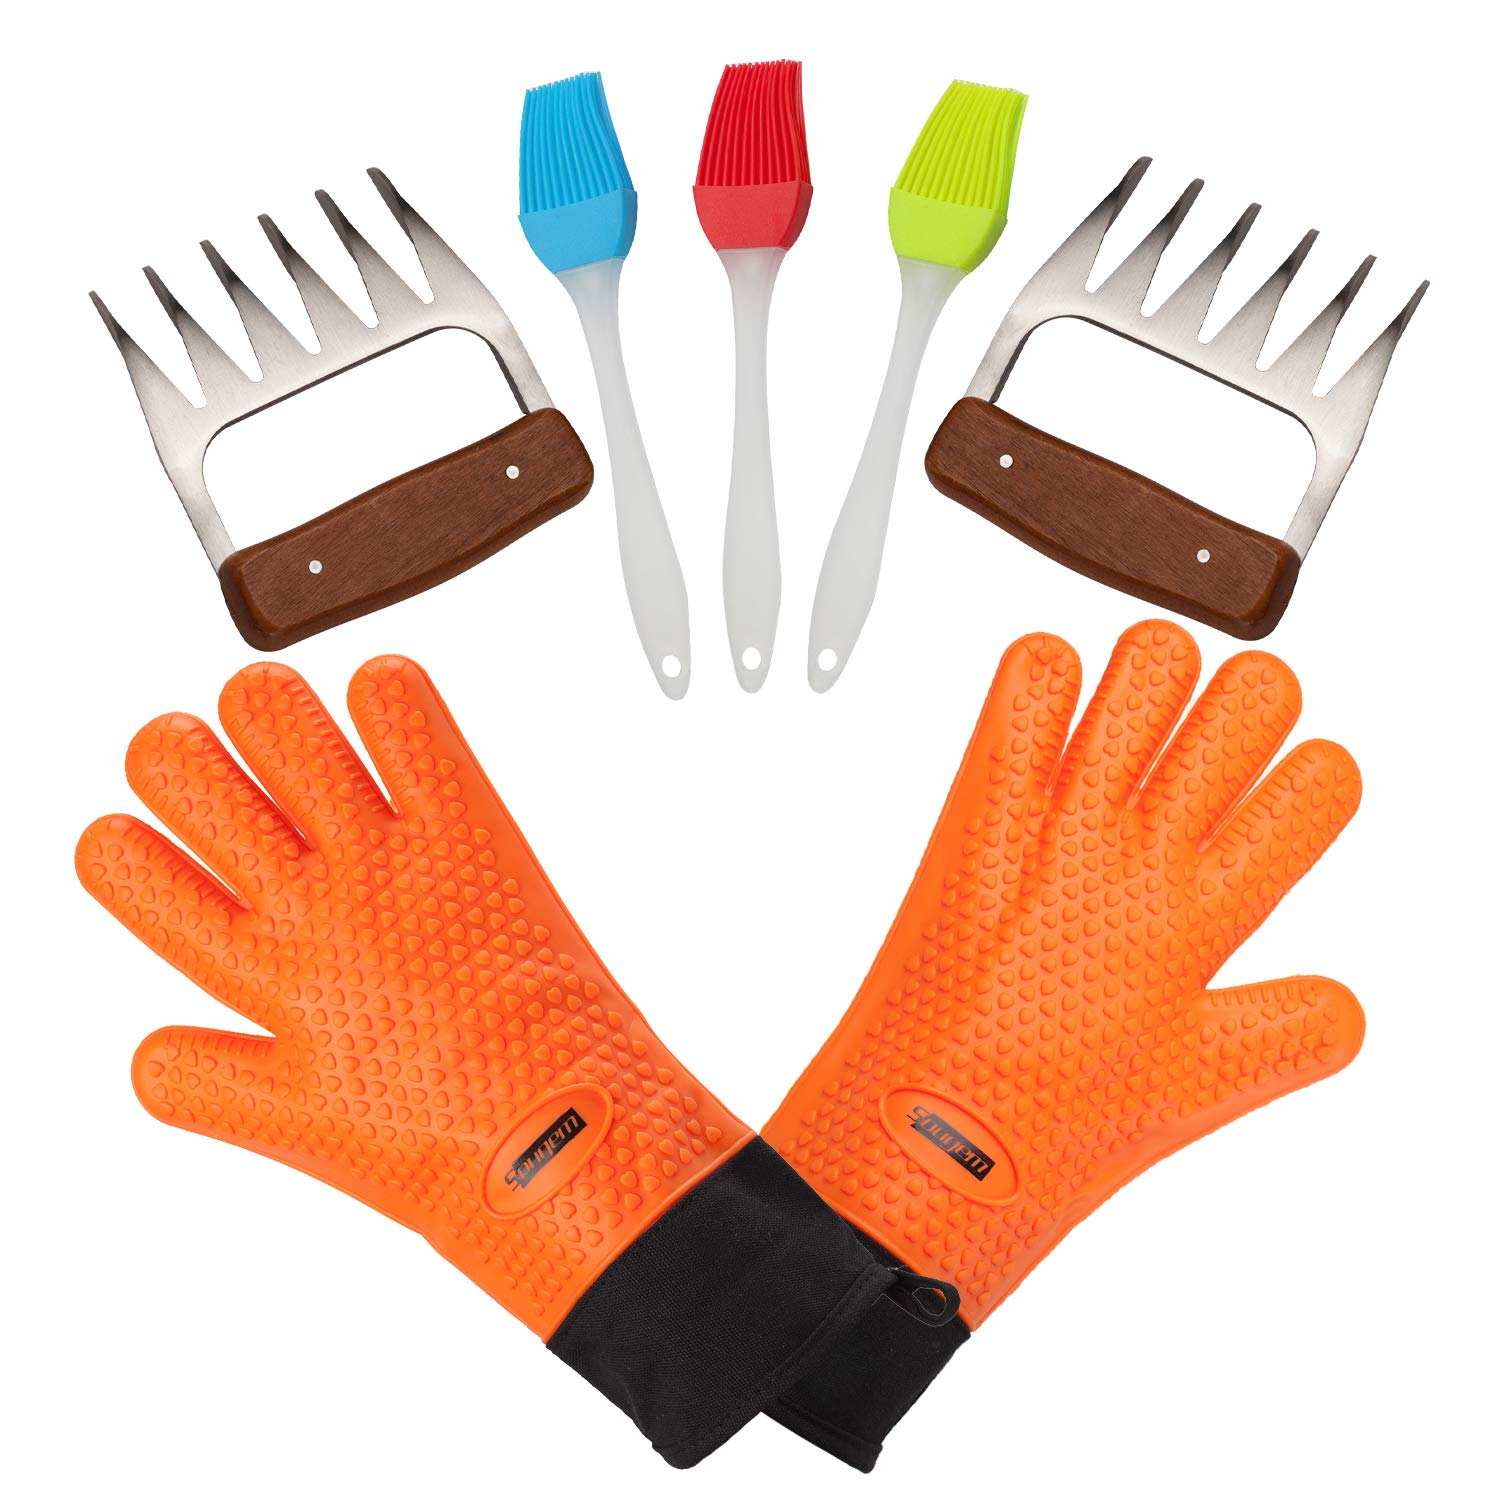 Sougem Meat Claws Heat-Resistant Silicone Cooking Gloves and 3 Silicone Grill Brushes, Barbecue Tool Sets for Outdoor Cooking, Oven, Grilling, Smoking by Sougem